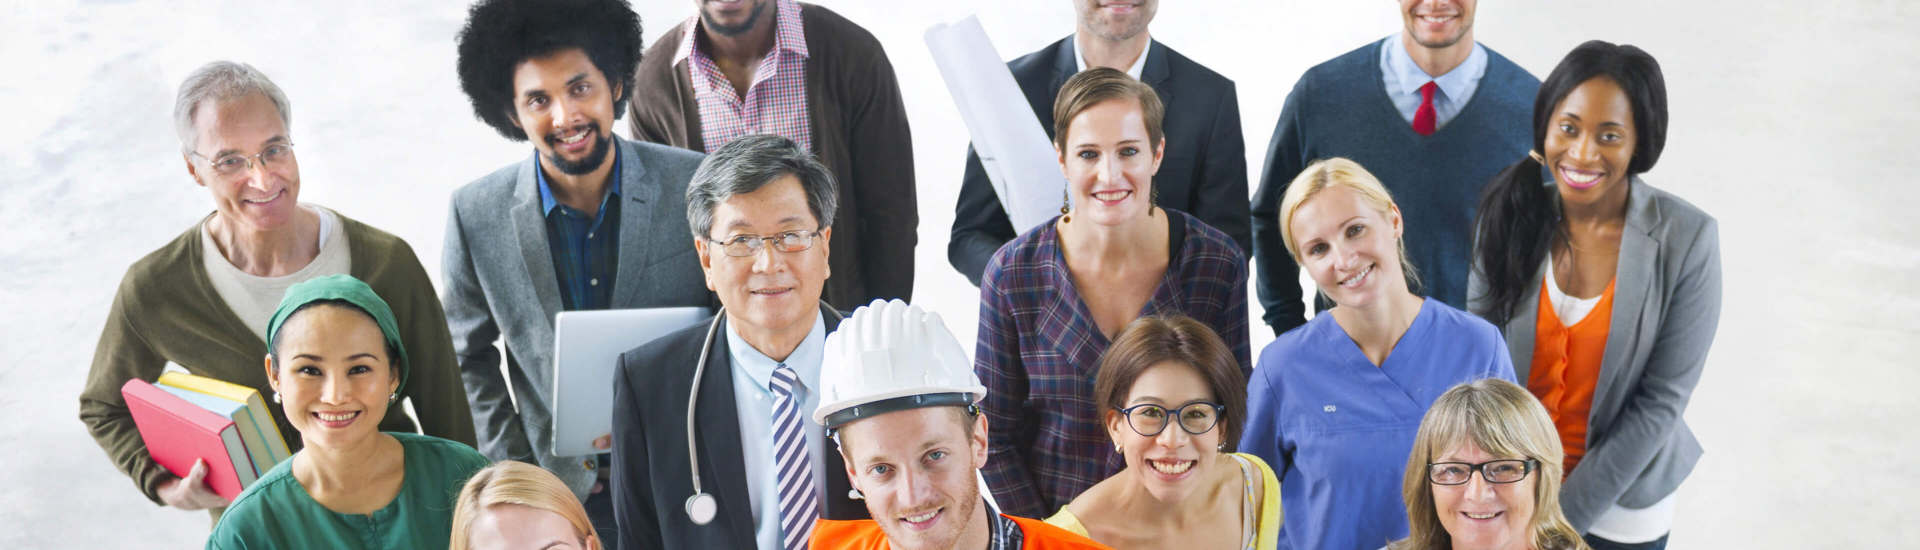 diverse group of professional workers